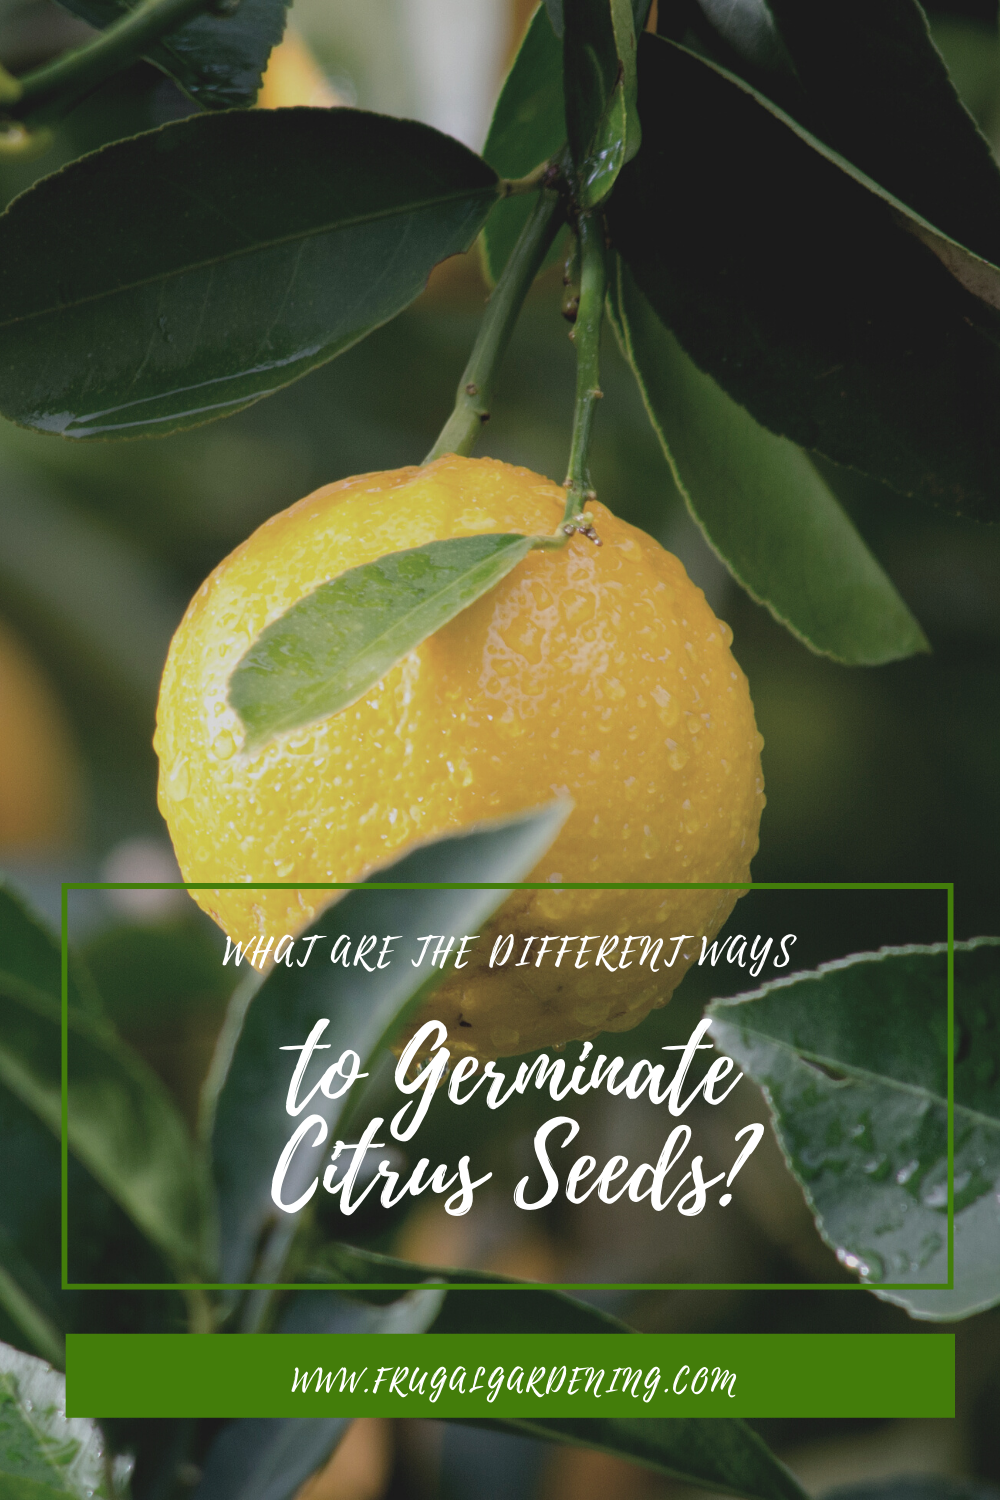 What Are the Different Ways to Germinate Citrus Seeds